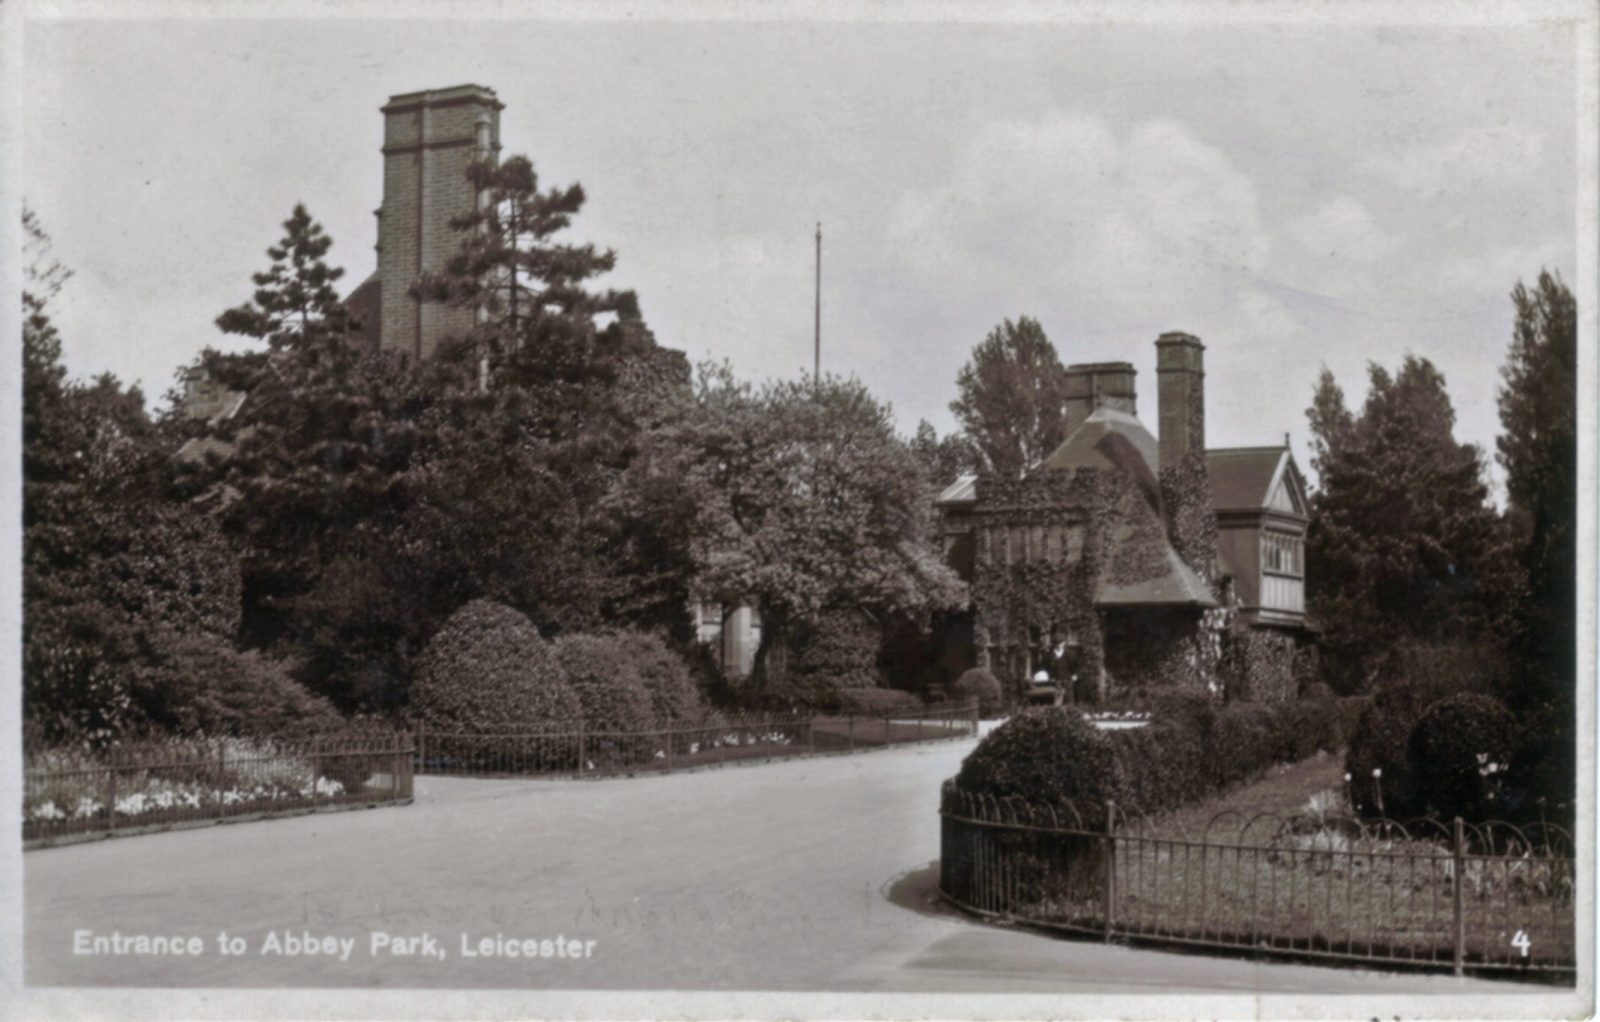 Abbey Park, Leicester. 1921-1940: Broad walk leading to entrance gates. Franked 1926 (File:1018)